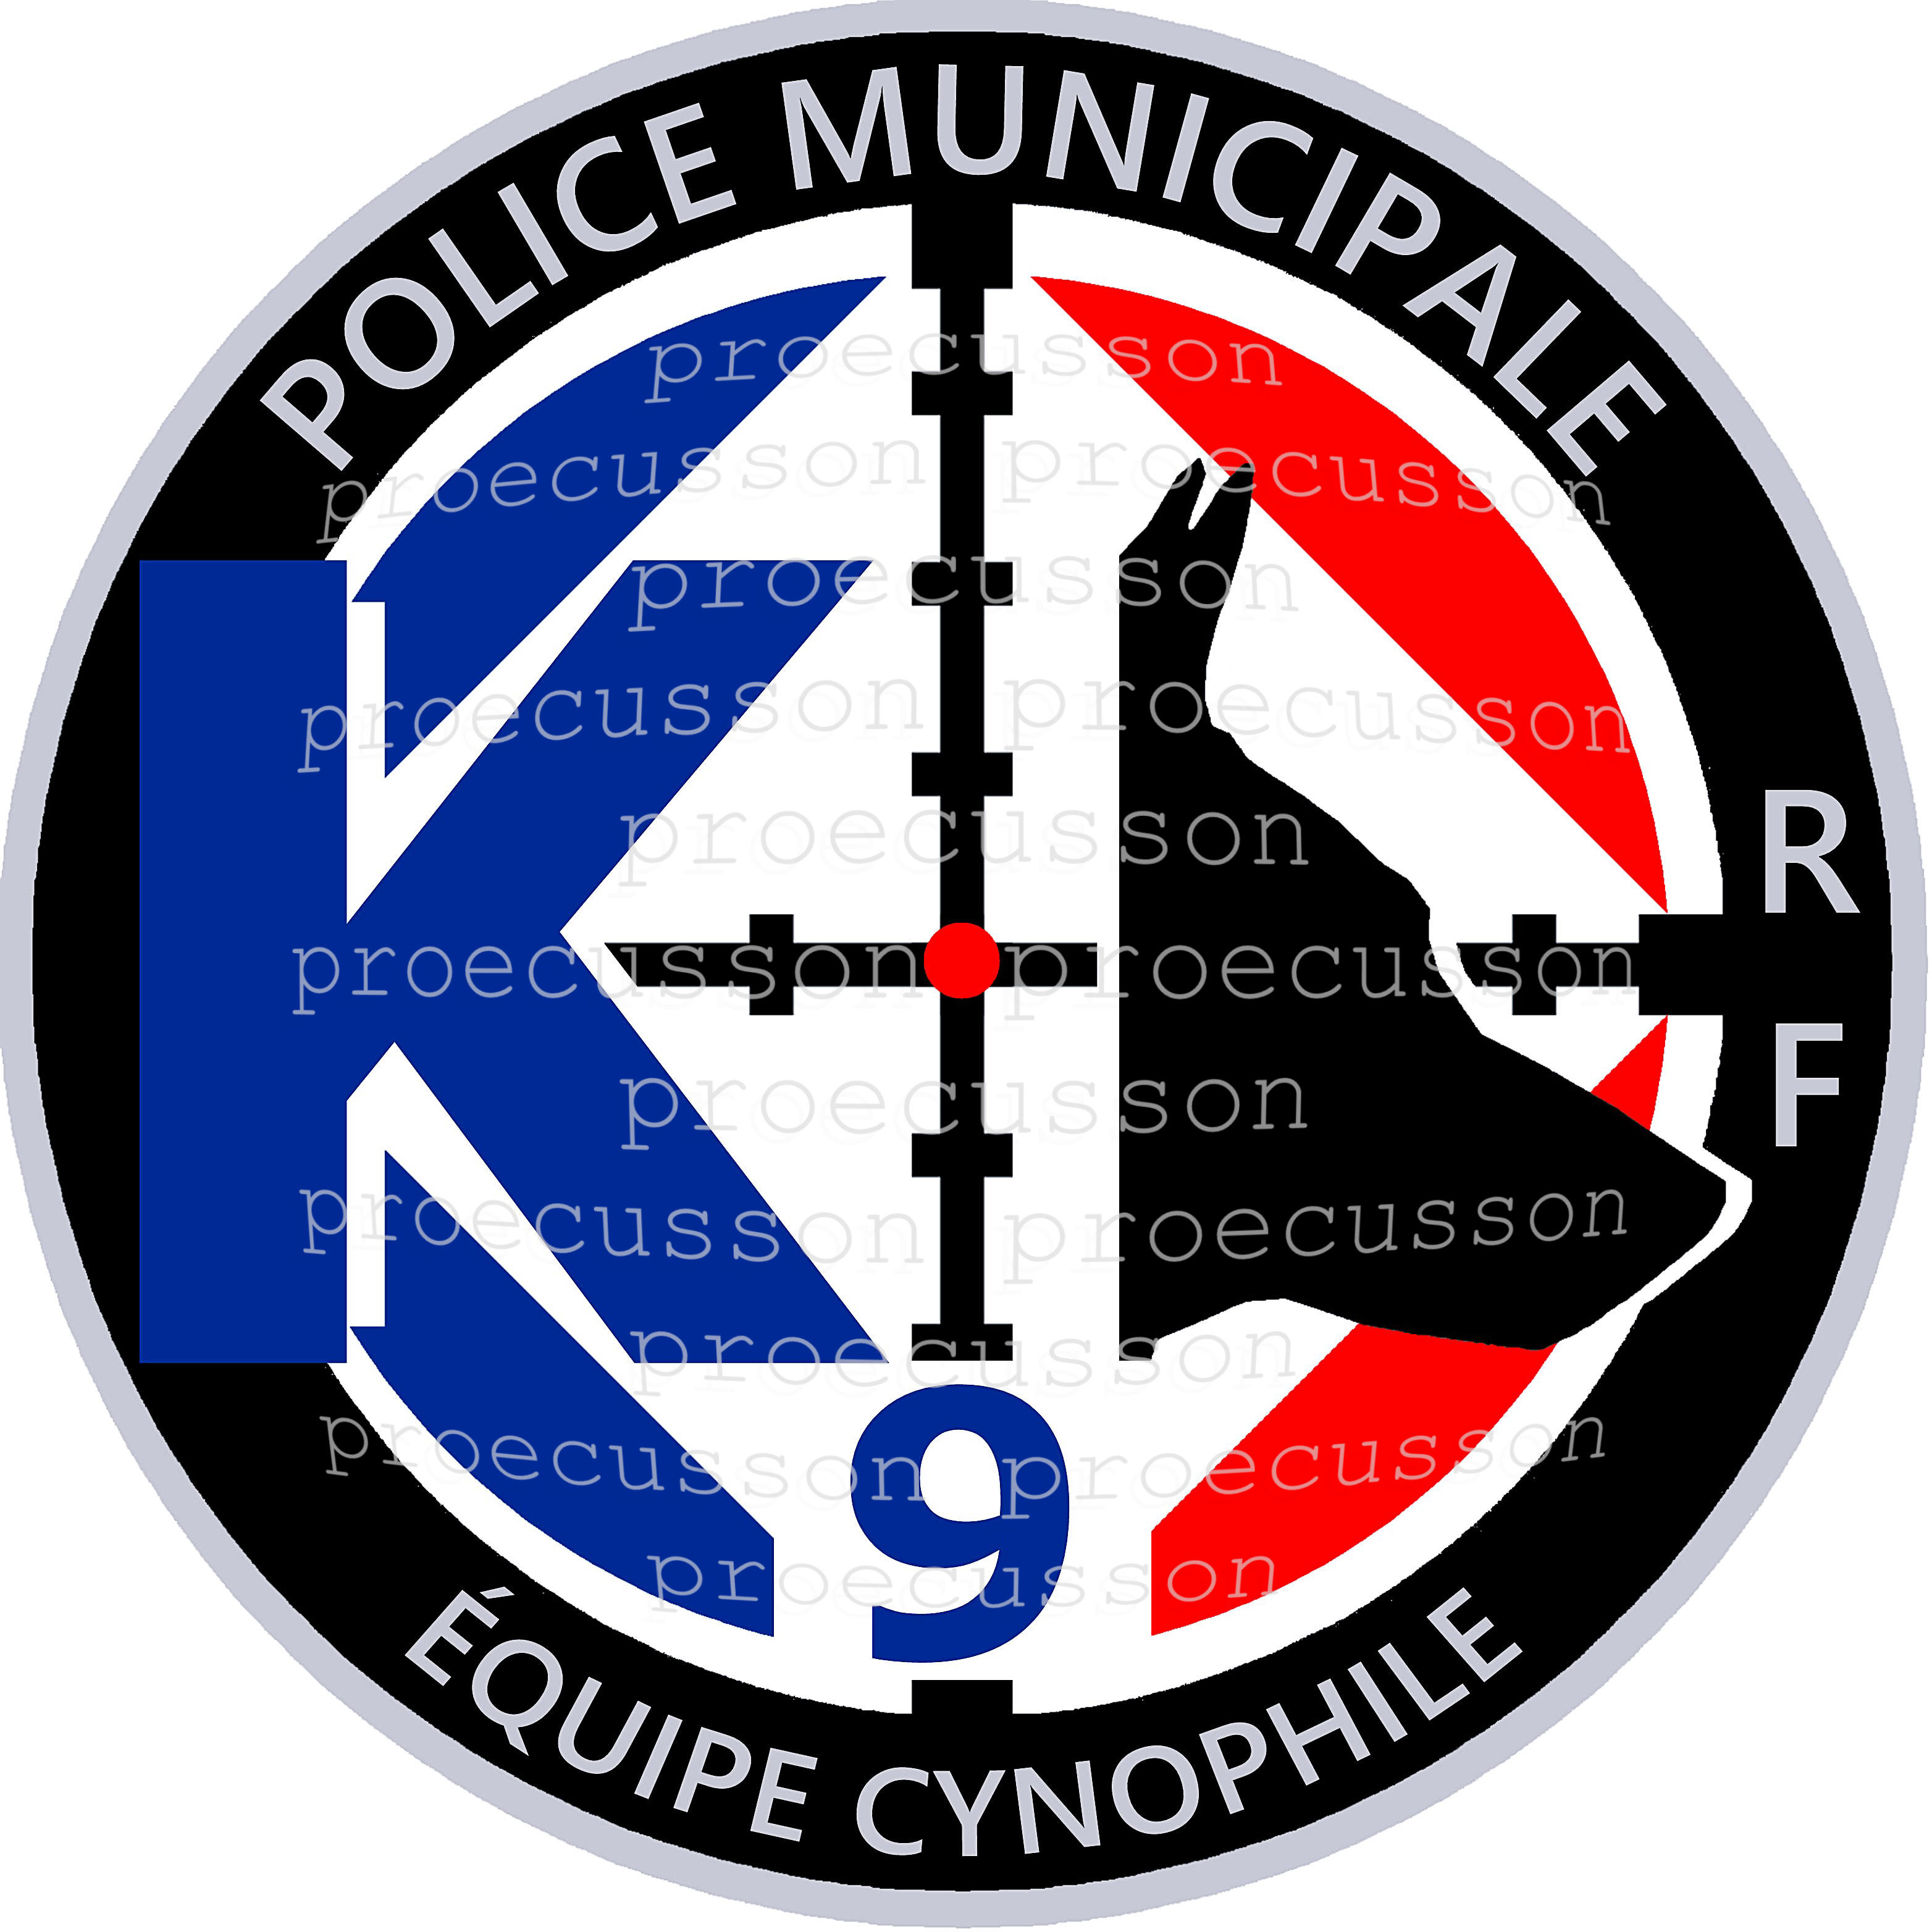 POLICE MUNICIPALE ÉQUIPE CYNOPHILE K9